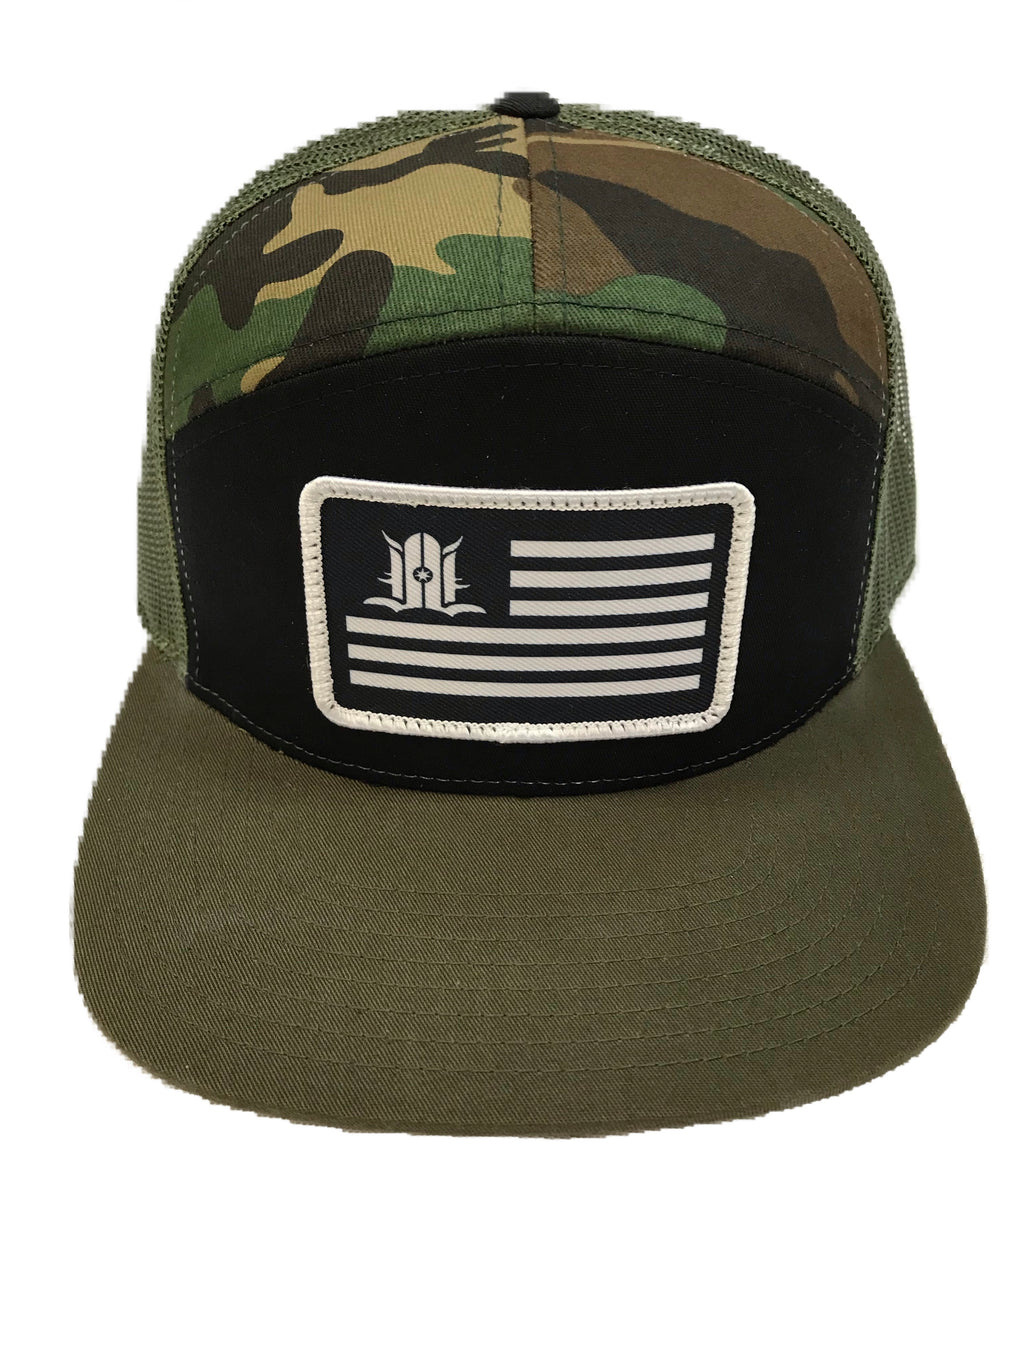 LOCALS FLAG 7 PANEL FLAT BILL TRUCKER CAMO/BLACK